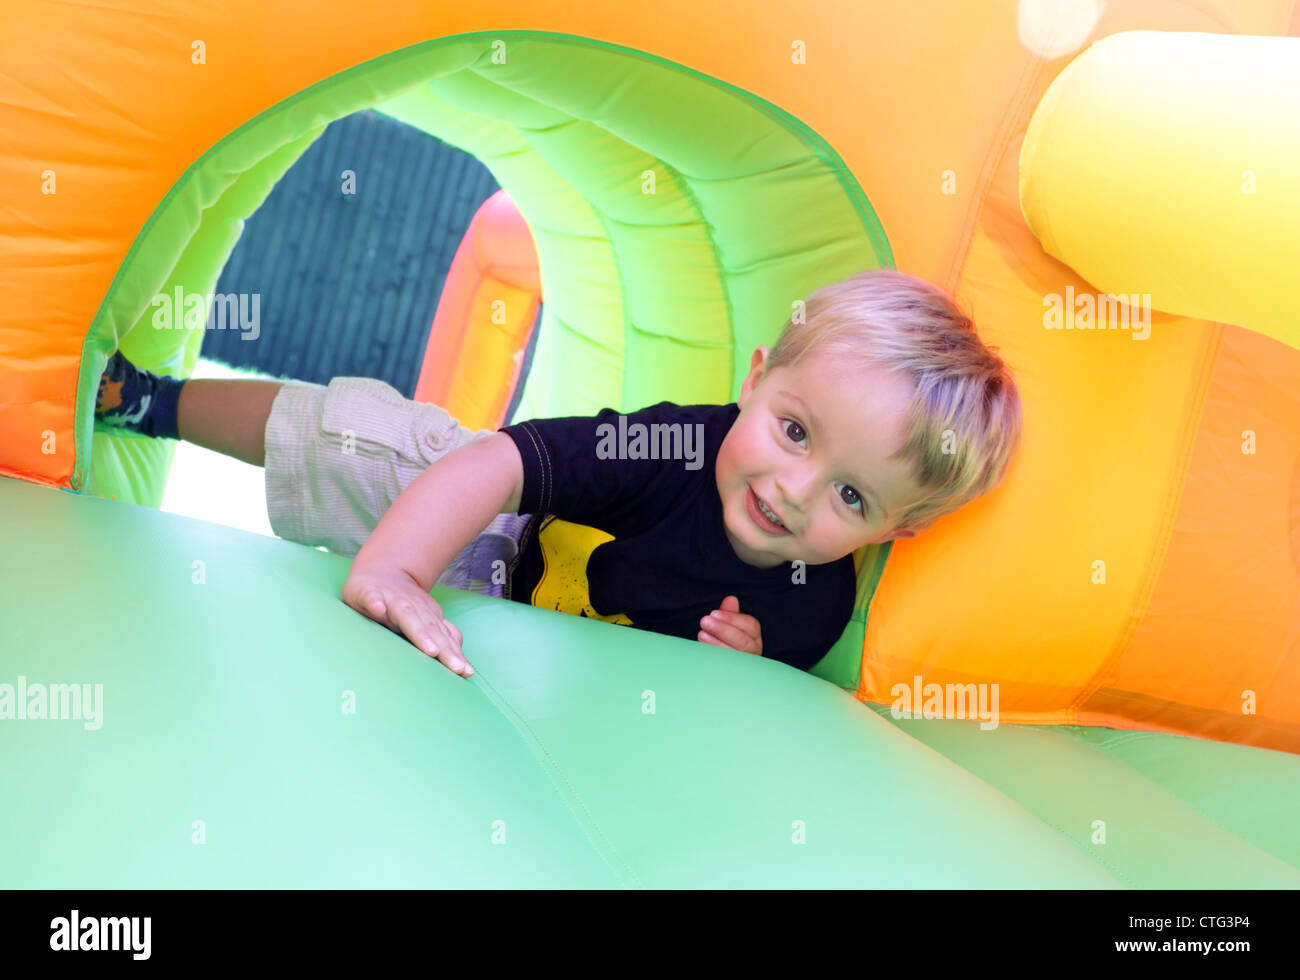 Child on bouncy castle - Stock Image